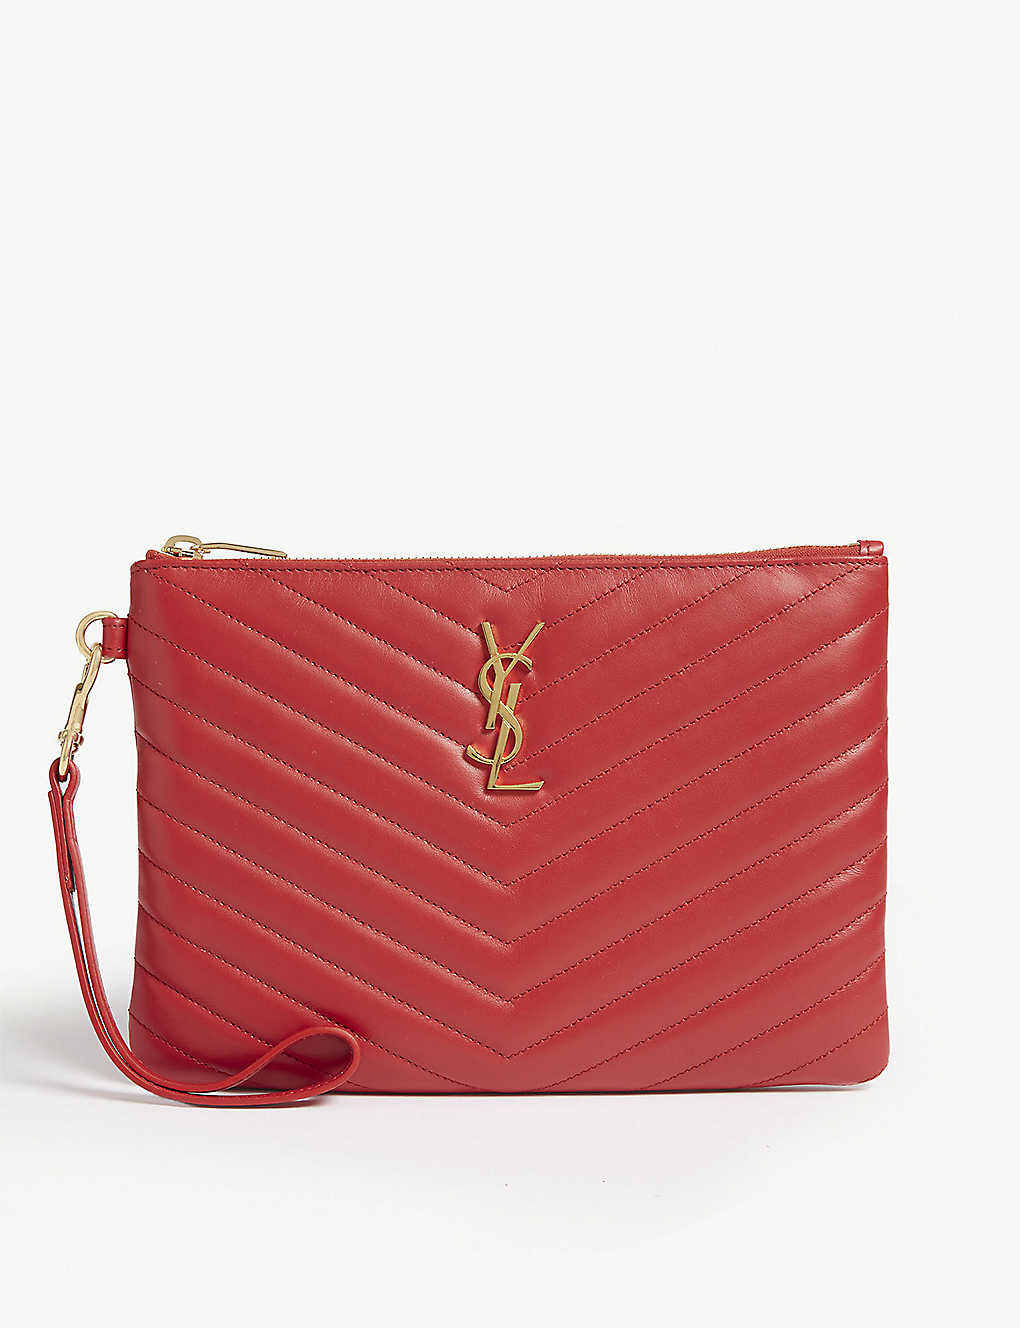 cee31e68689 SAINT LAURENT - Monogram logo quilted leather pouch | Selfridges.com